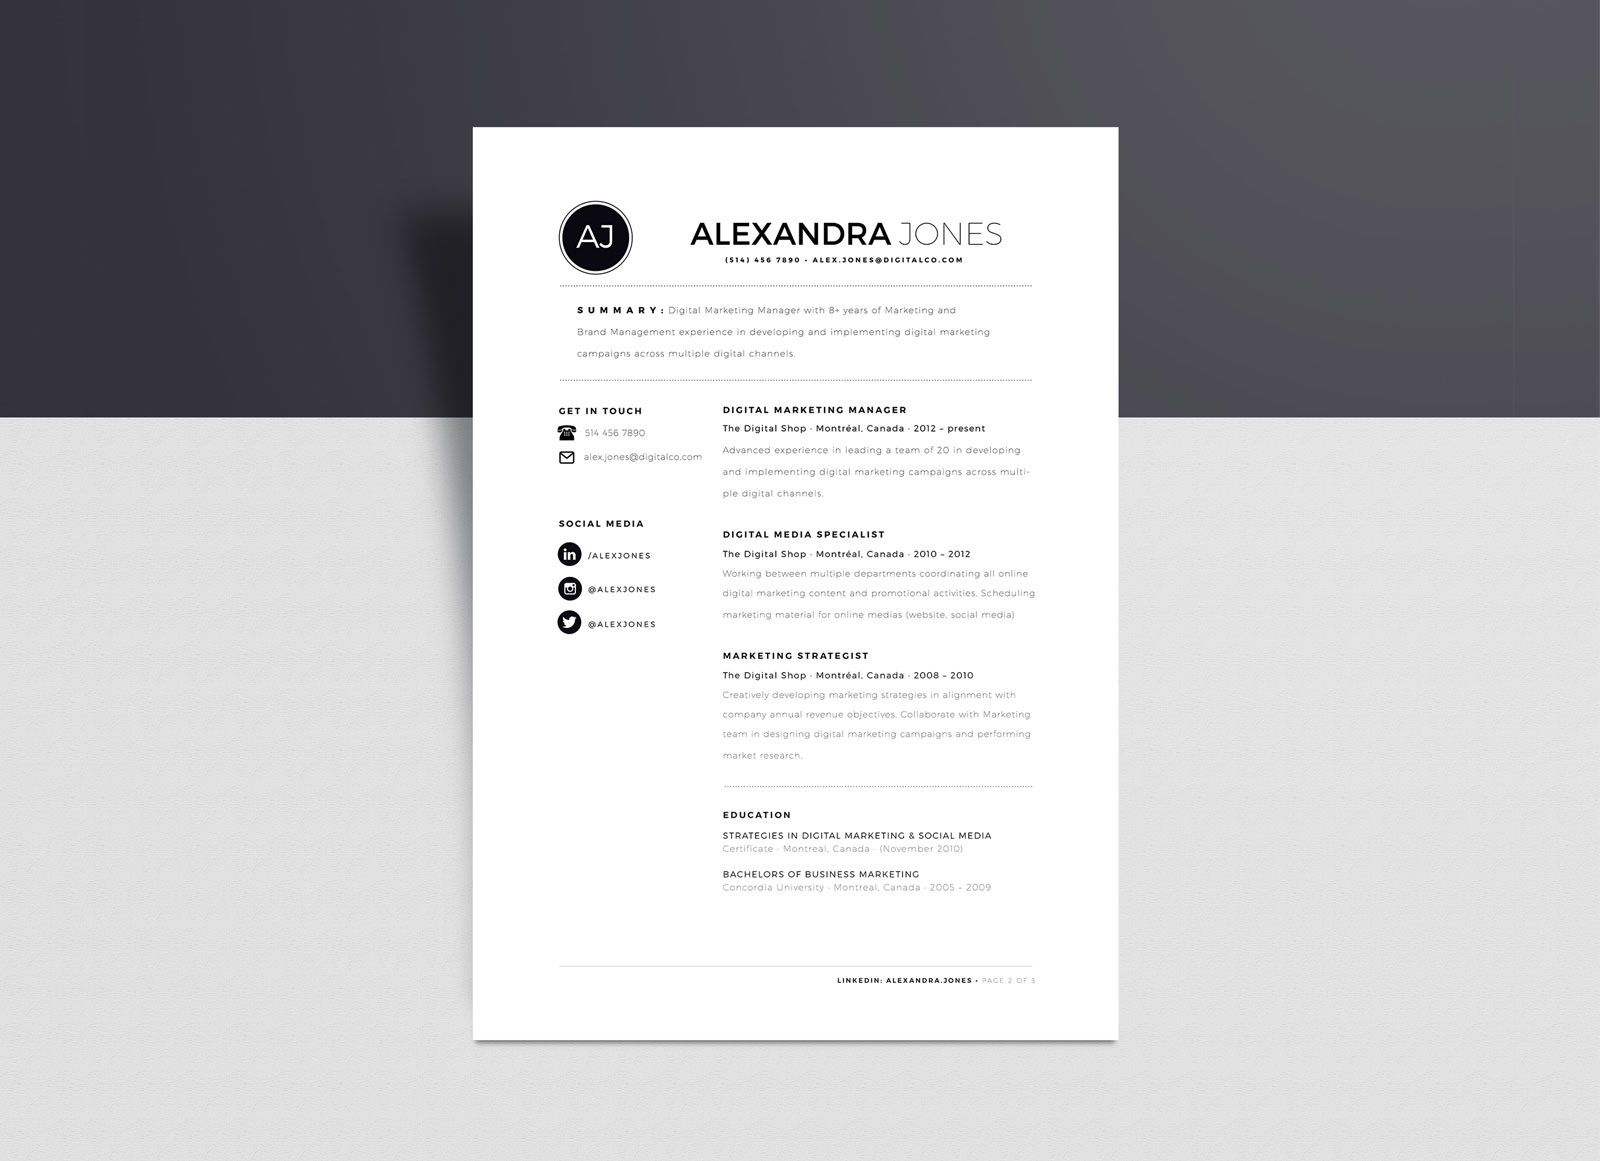 003 Fantastic Free Microsoft Word Resume Template Inspiration  Templates Modern For DownloadFull